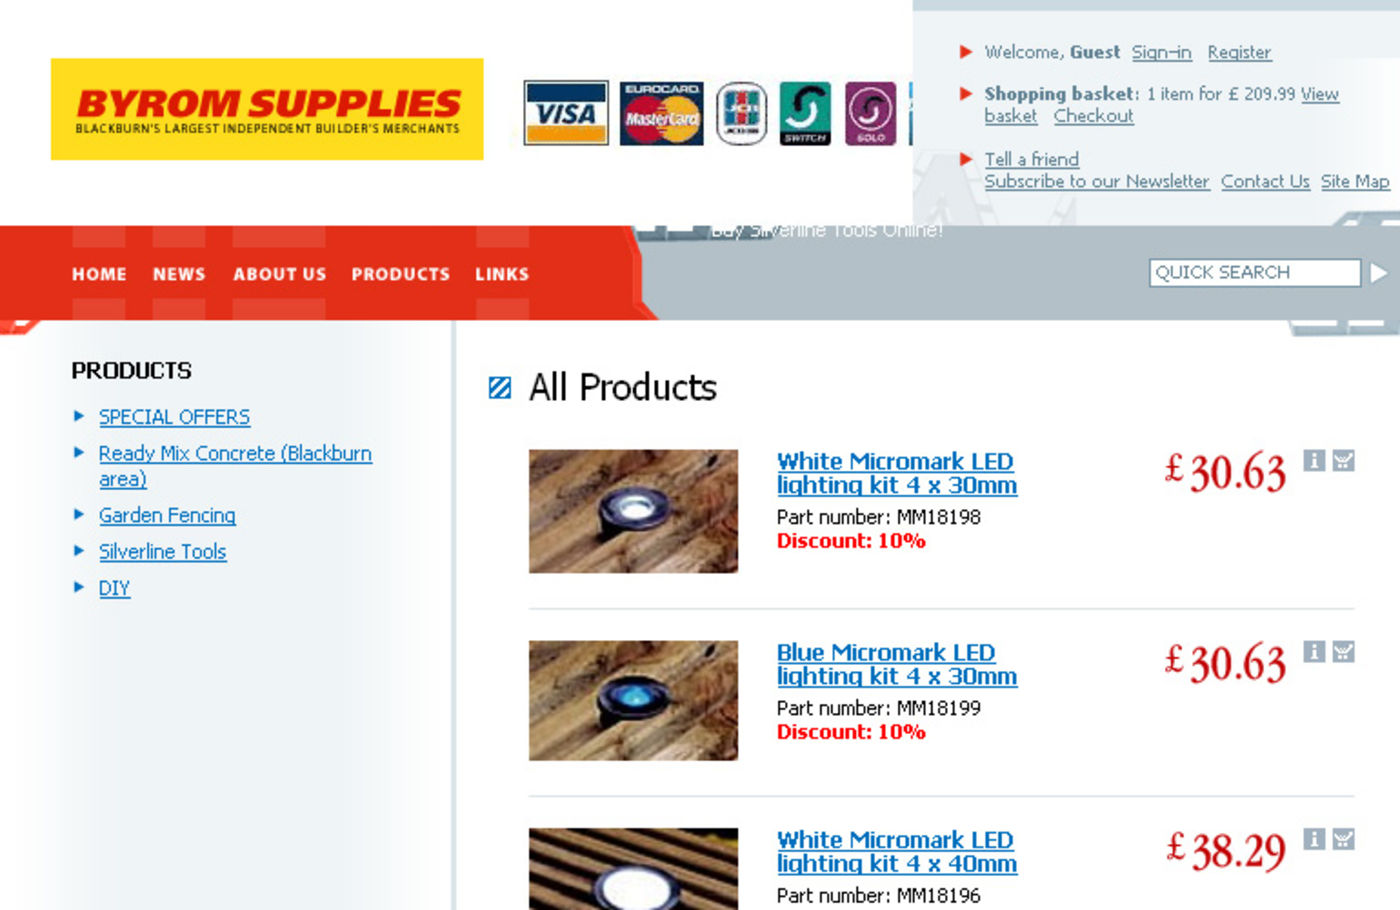 Byrom Supplies Products